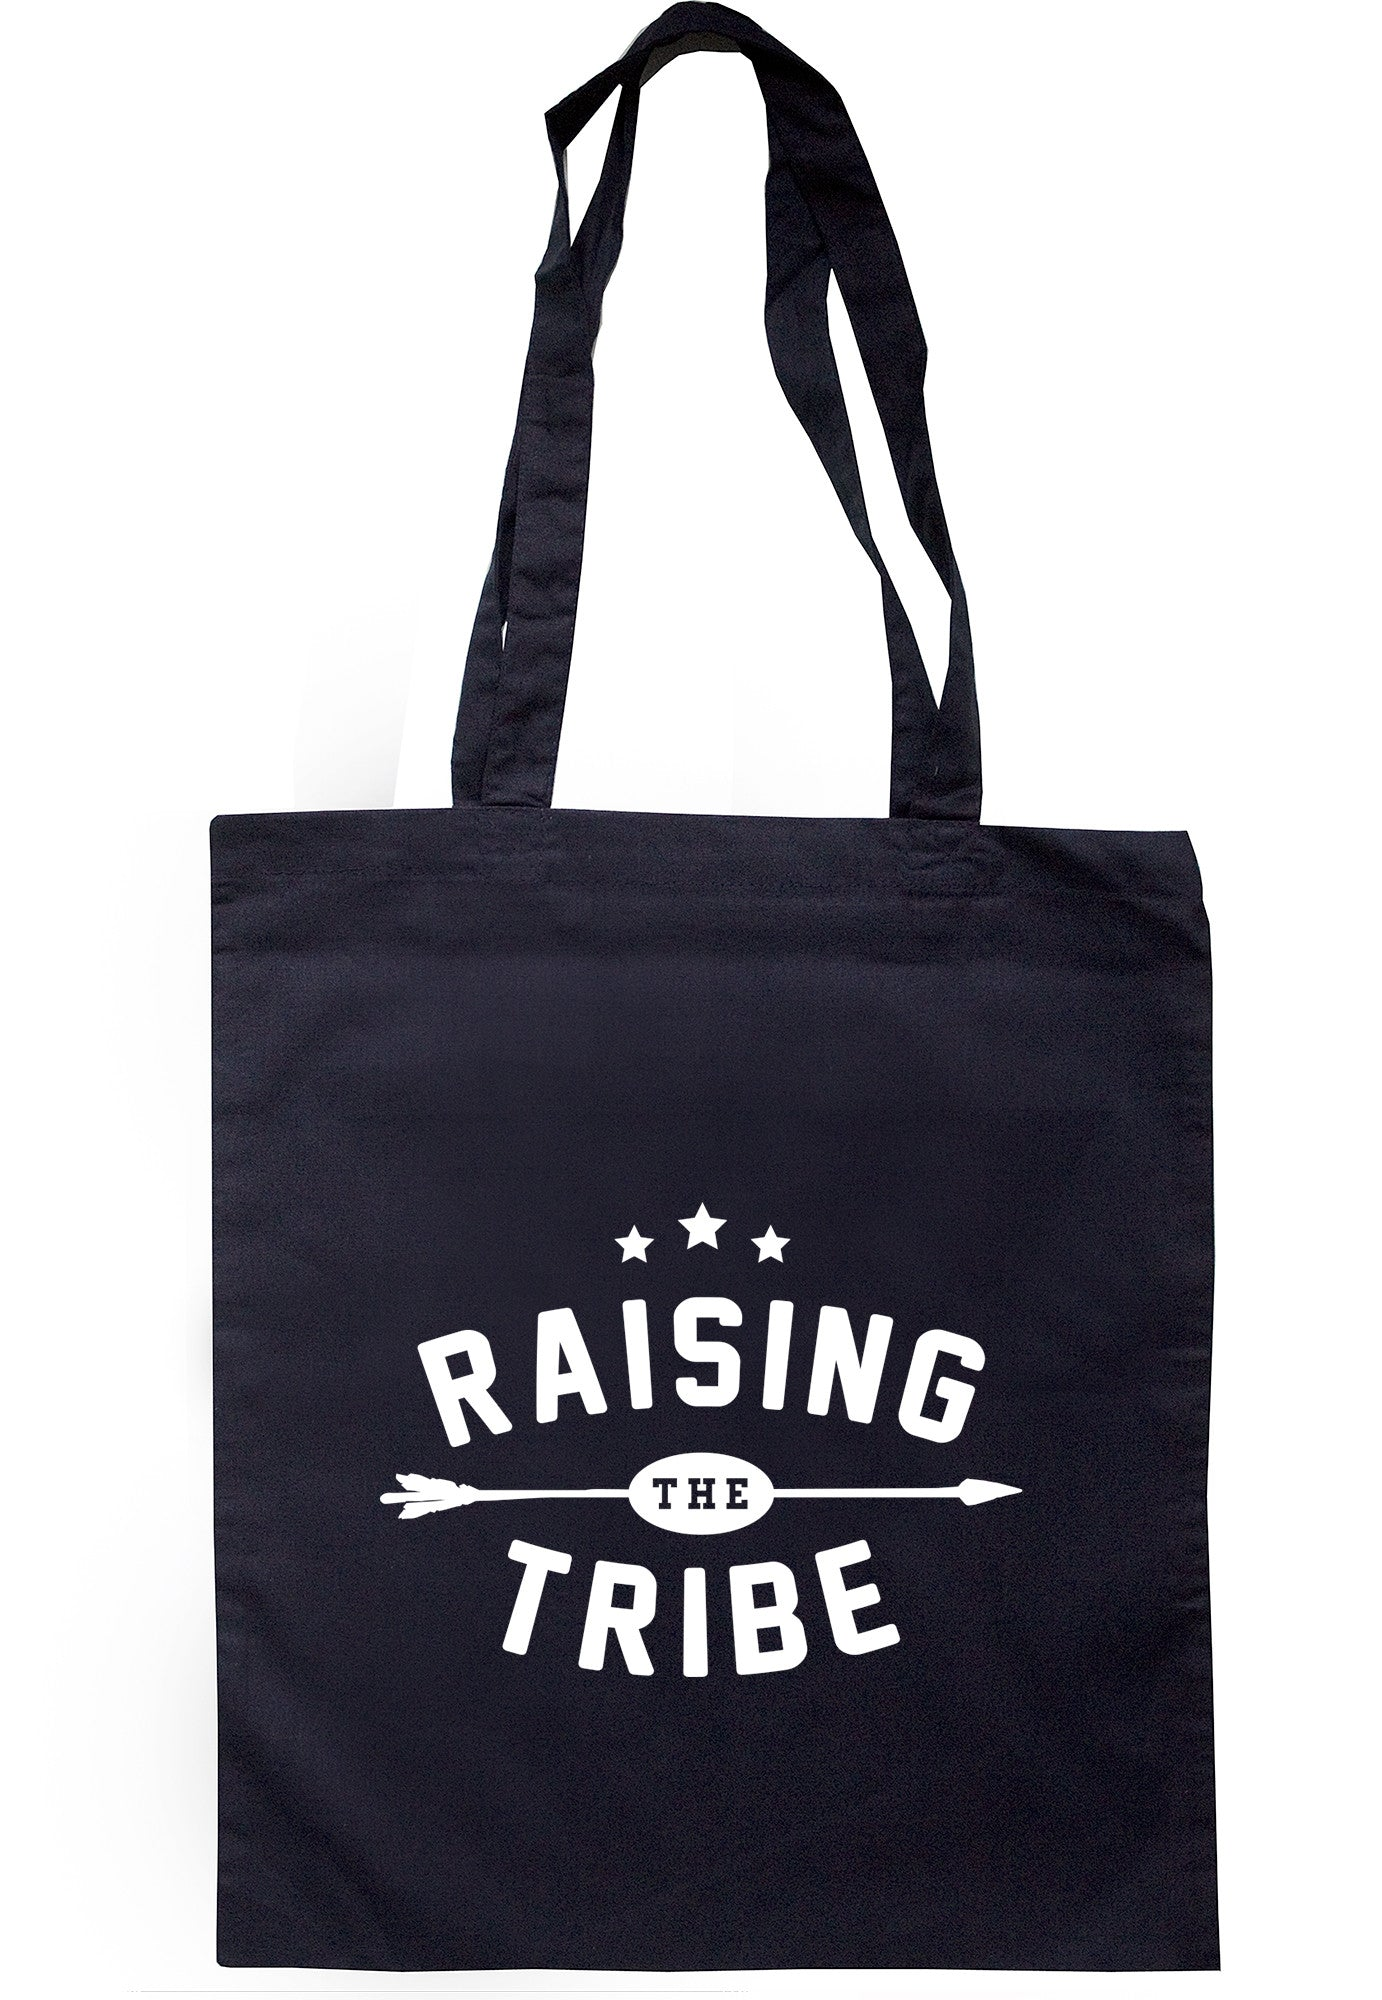 Raising The Tribe Tote Bag TB0559 - Illustrated Identity Ltd.